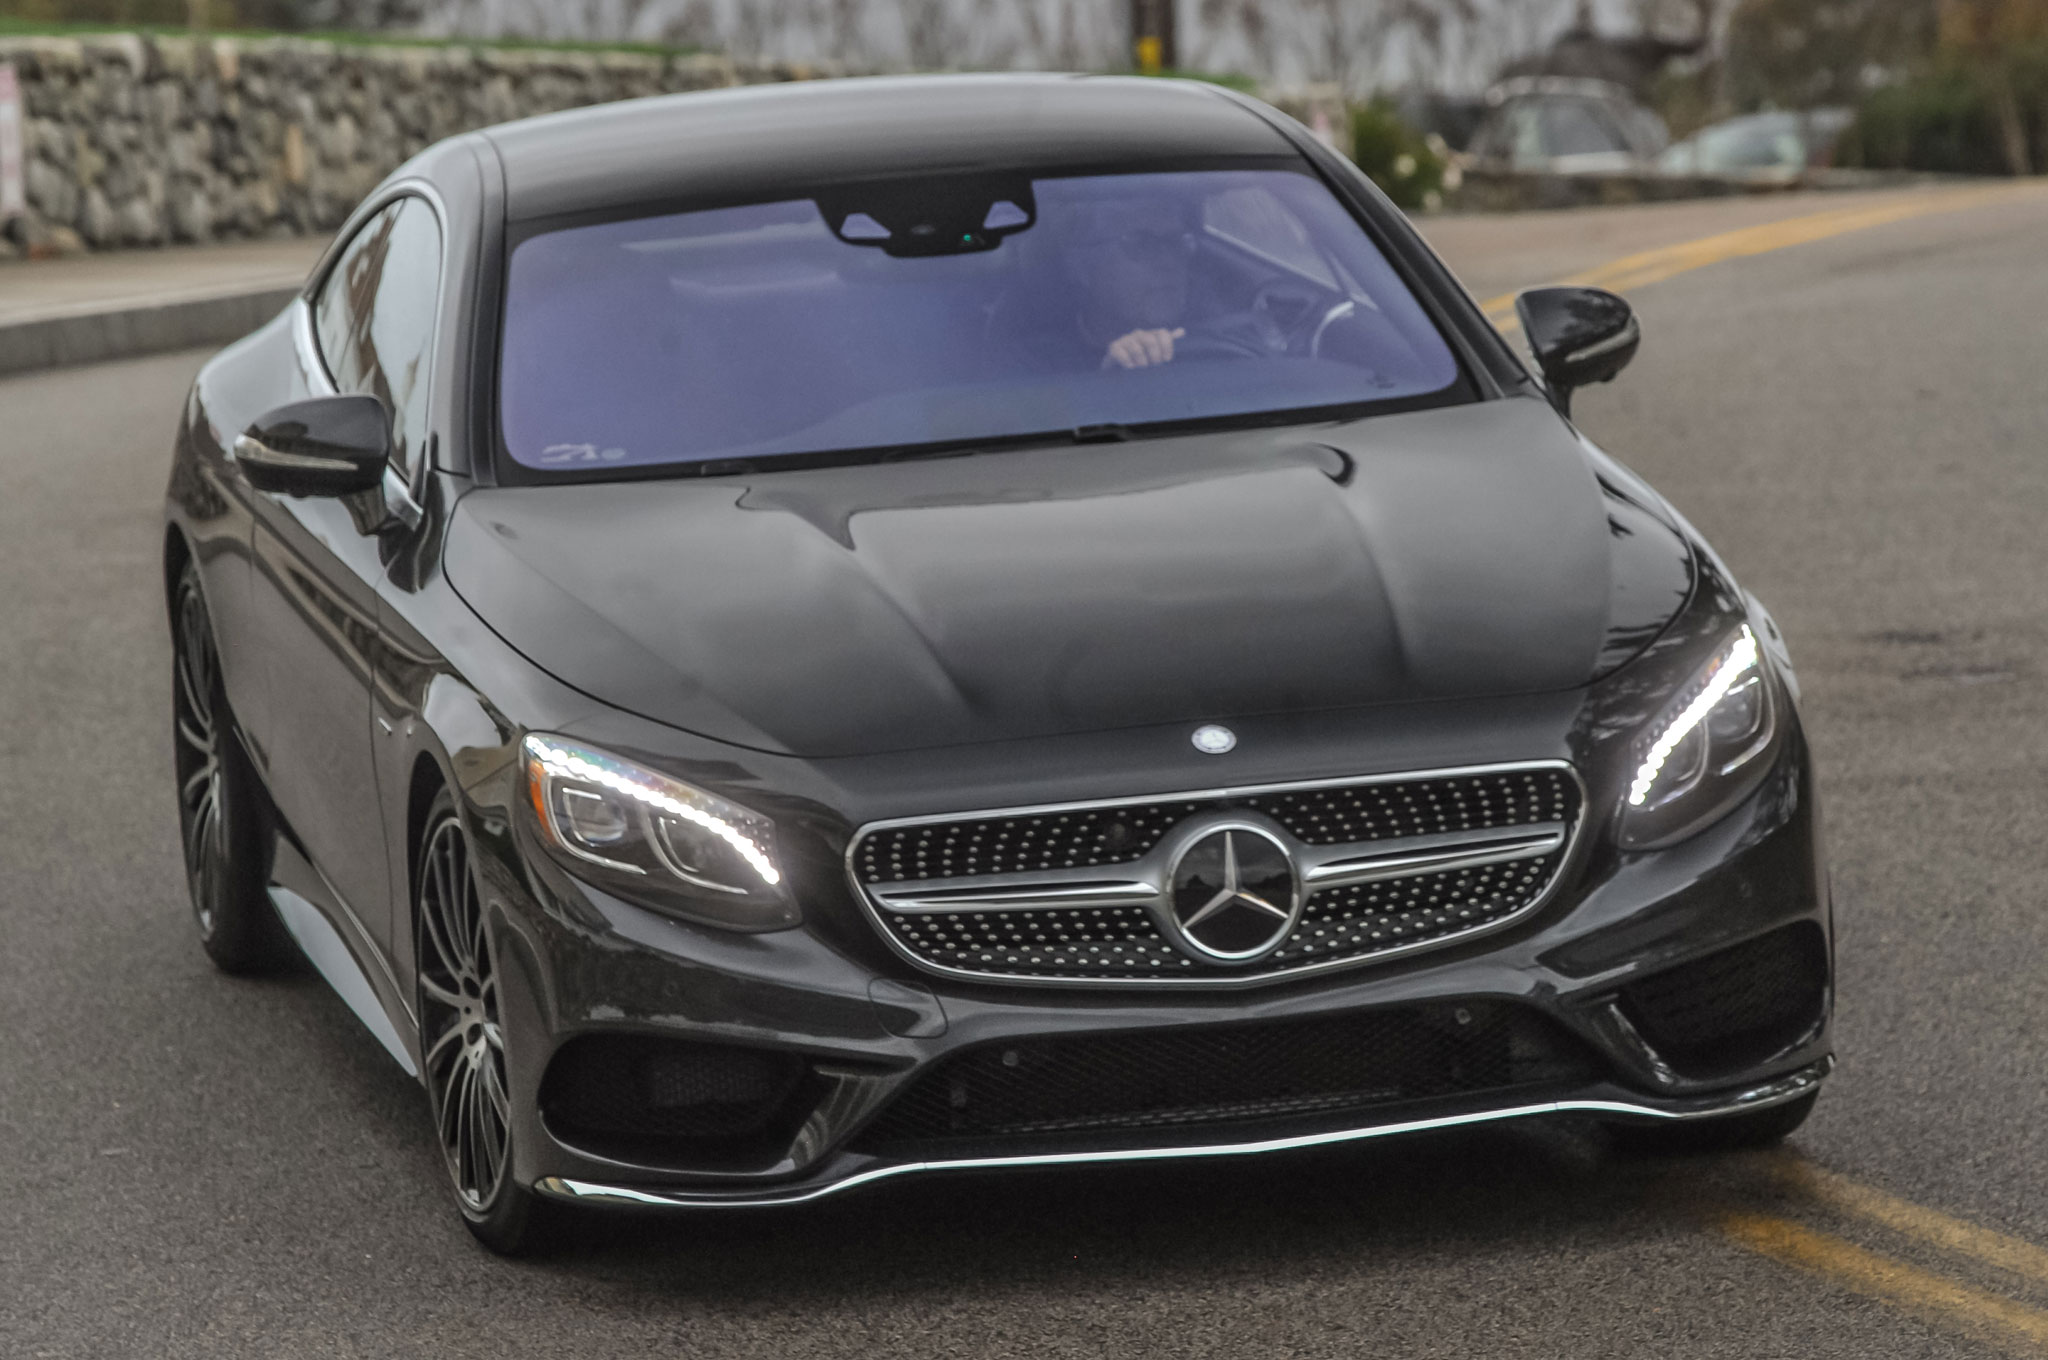 http://st.automobilemag.com/uploads/sites/11/2015/07/2015-Mercedes-Benz-S550-coupe-front-three-quarter-view-in-motion-2.jpg